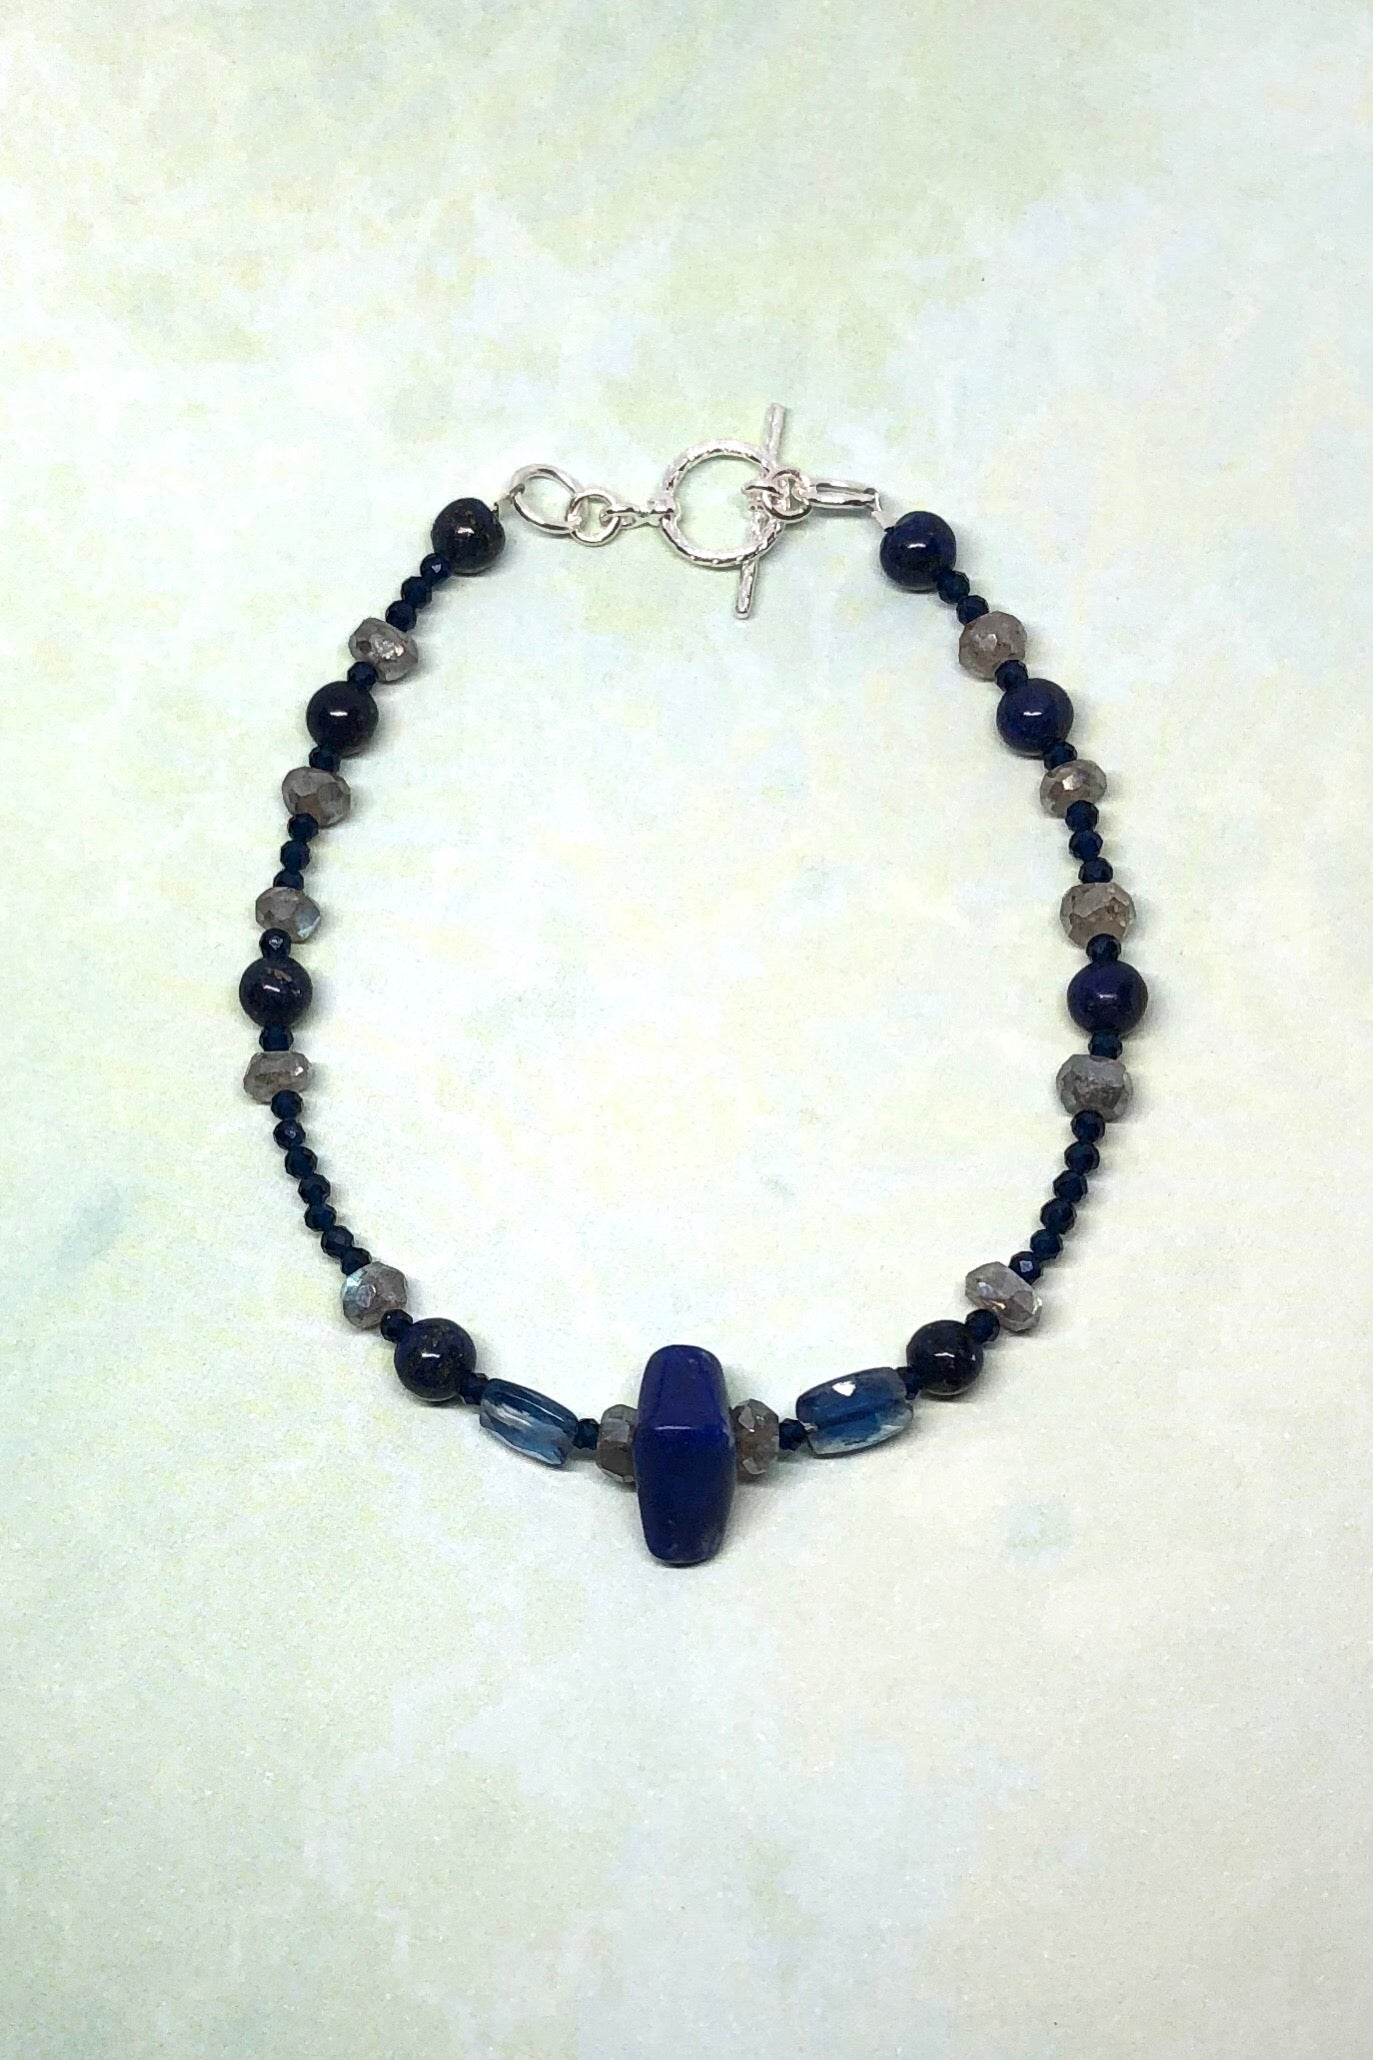 Lapis Lazuli and blue Iolite in such a pretty bracelet style. DETAILS: